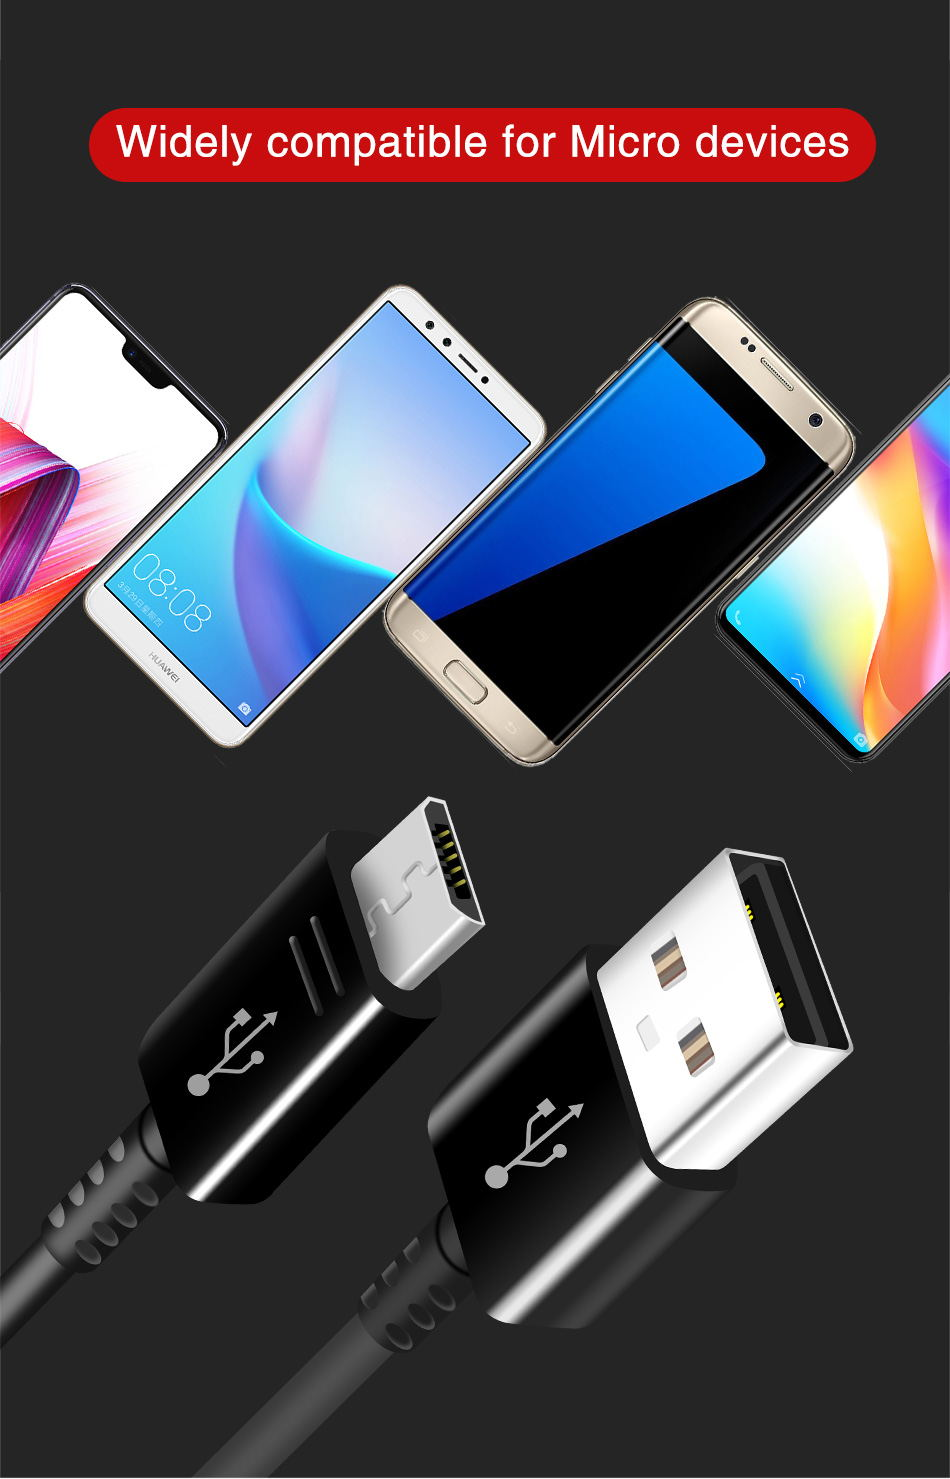 8Fast Charging Data Cables Adaptieve for Samsung S6 S7edge Original Fast Charging 2A 1.2m Micro USB Android Cable Note2 Note4_